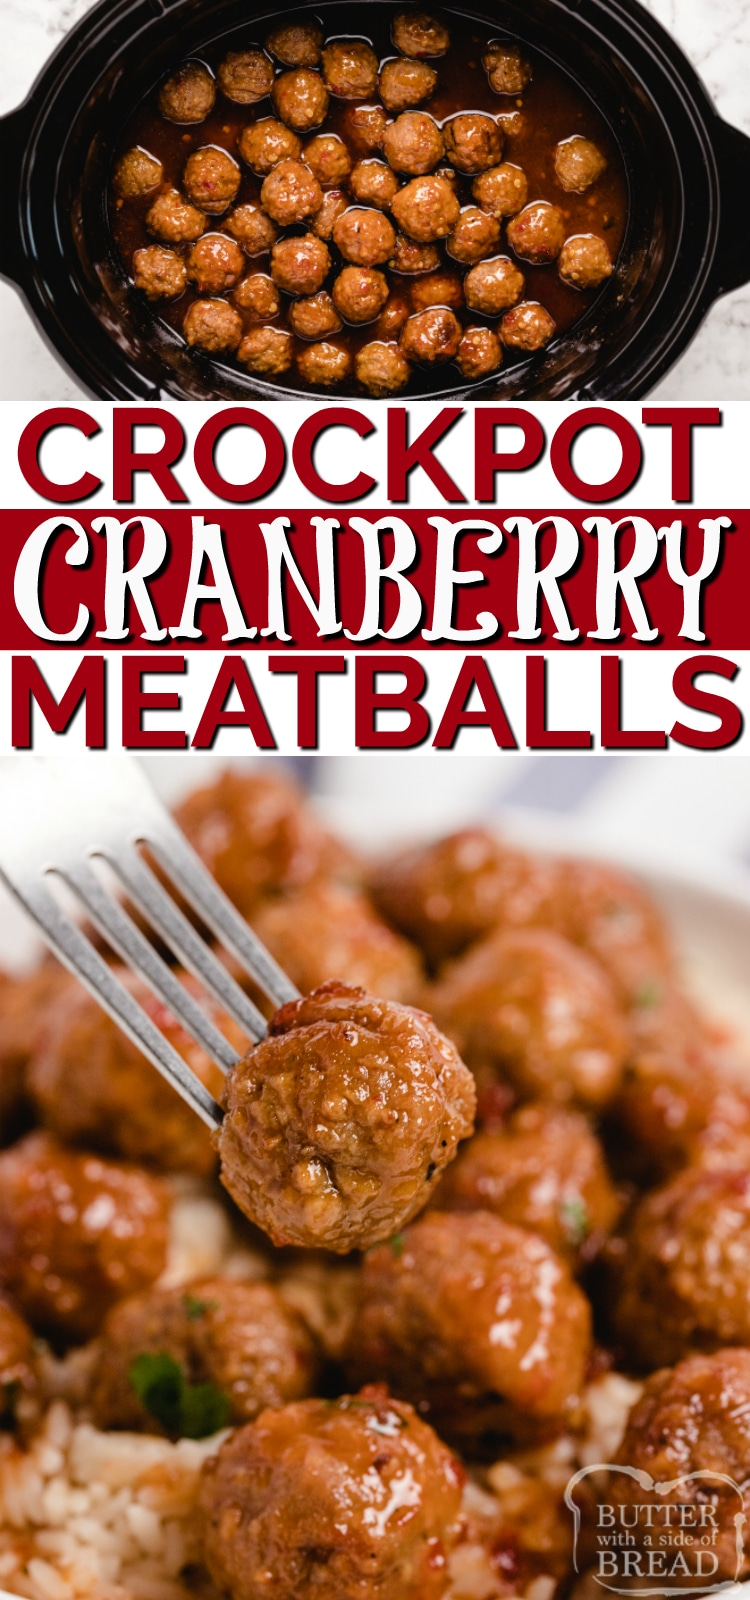 Crockpot Cranberry Meatballs make the perfect appetizer or a simple dinner when served with rice. Only a few simple ingredients and less than 5 minutes of prep time for this delicious slow cooker meatball recipe!